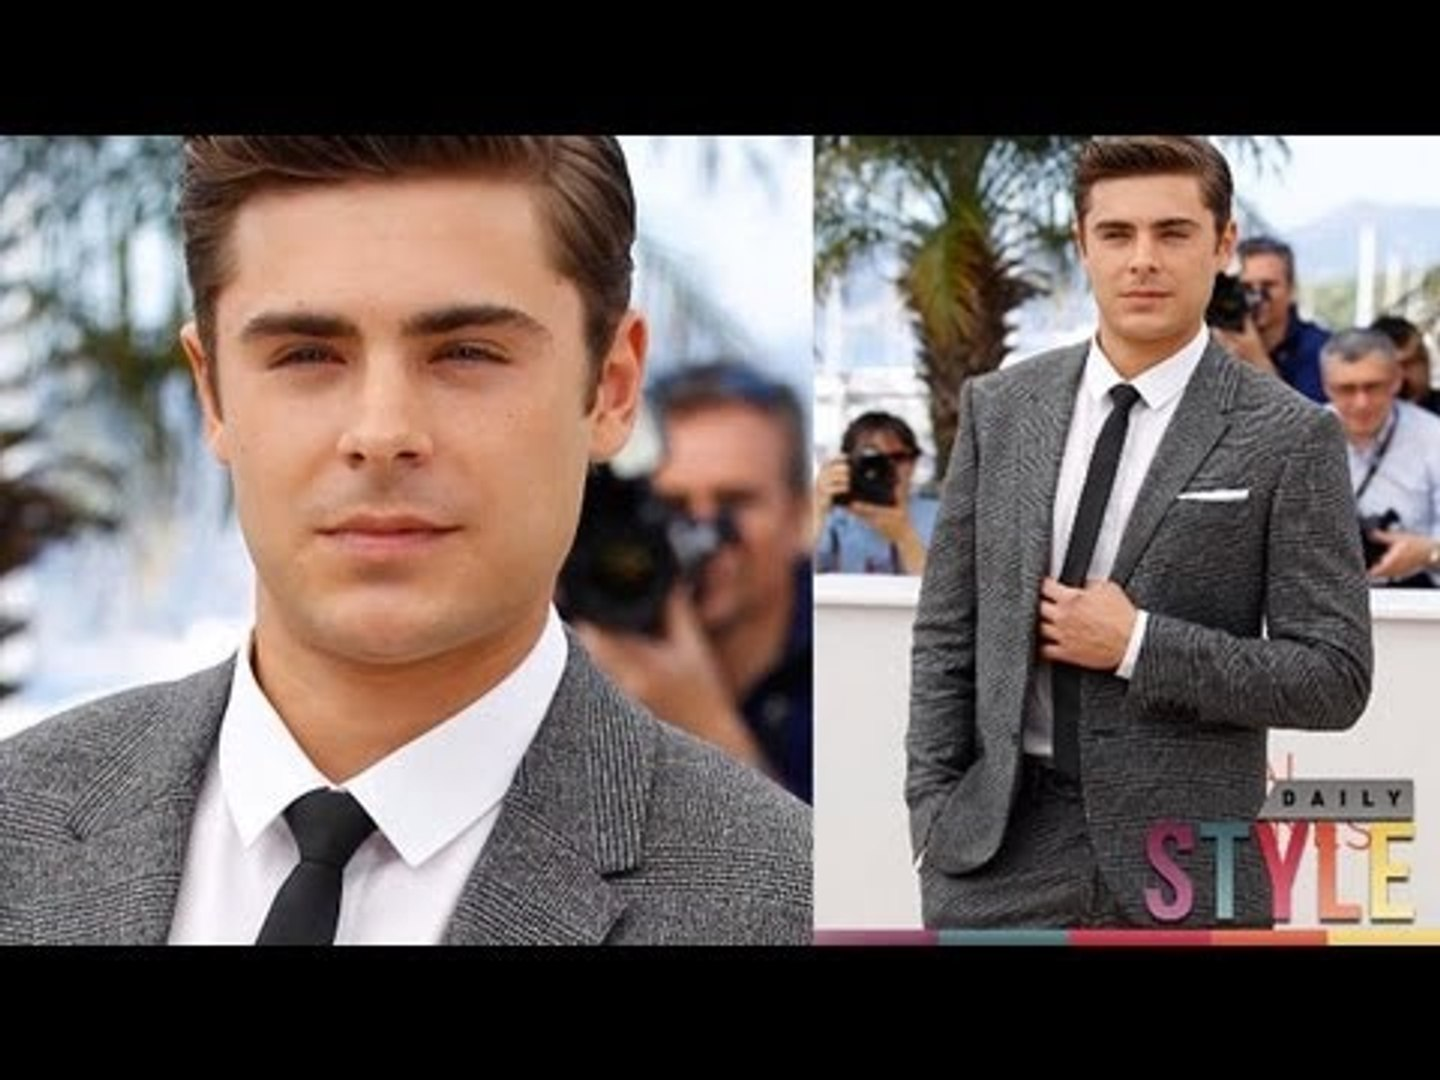 Hottest Men at the 2012 Cannes Film Festival! Zac Efron, Robert Pattinson